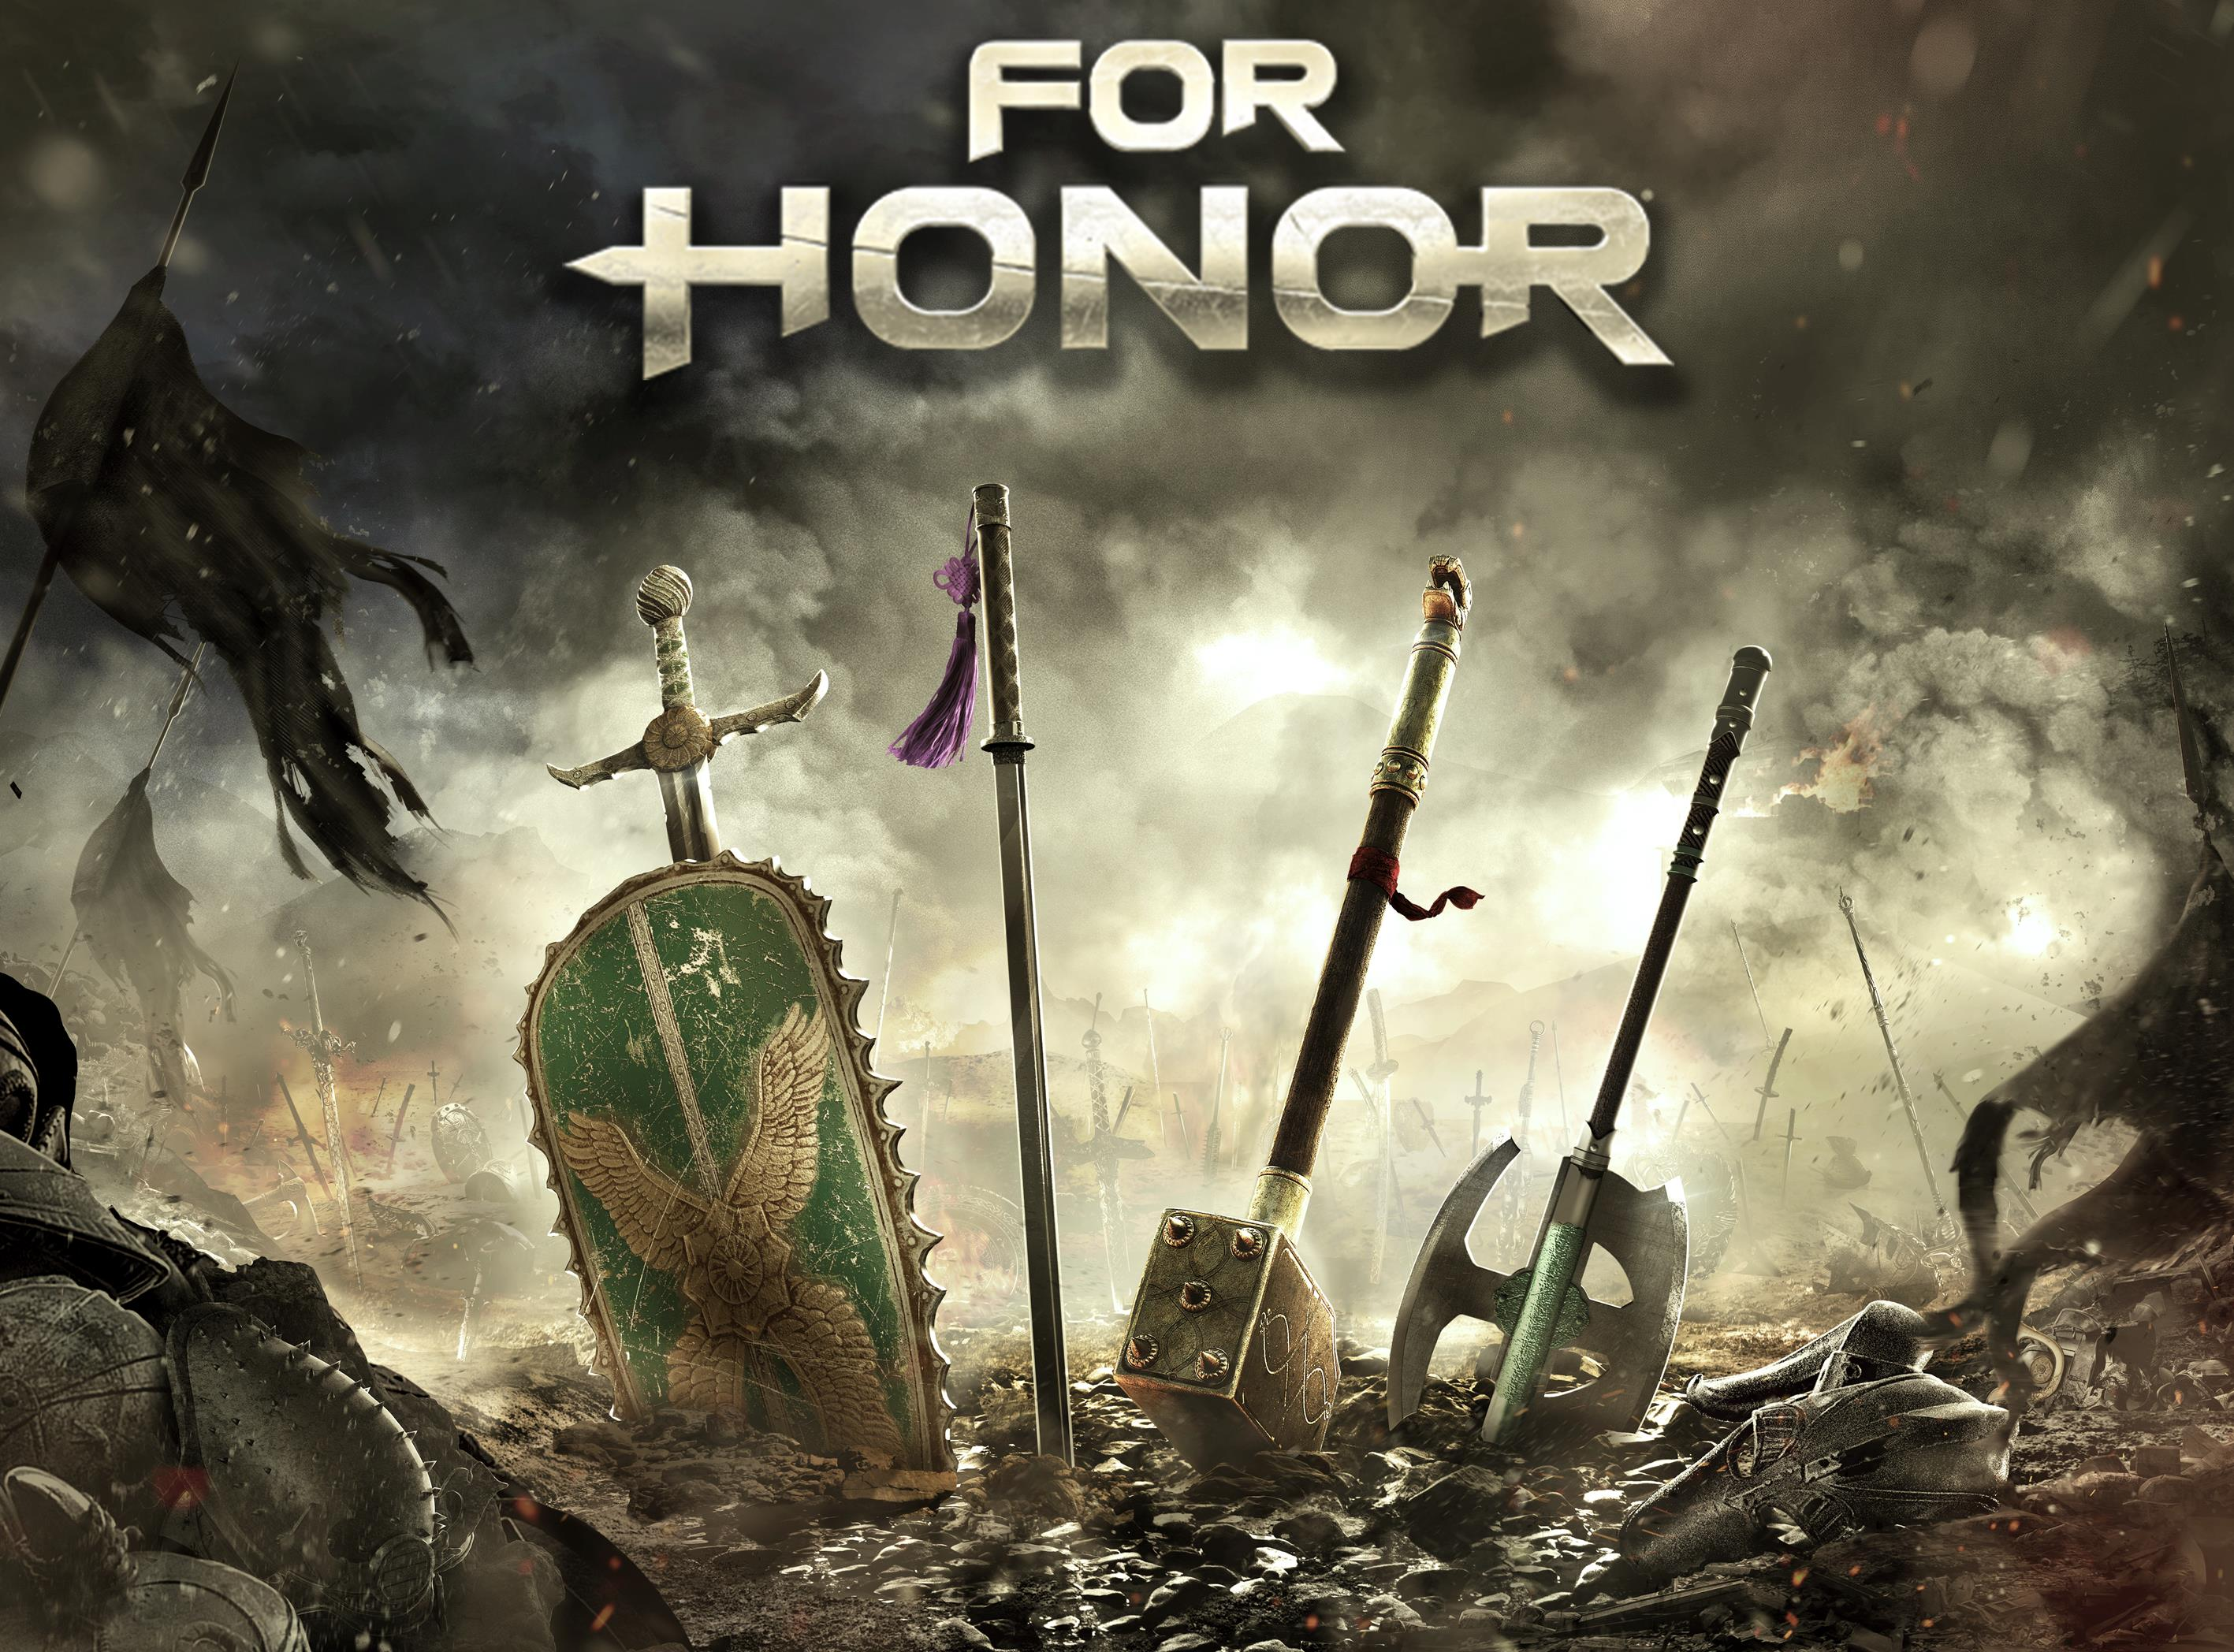 For Honor is getting 4 new heroes in 2019 - VG247